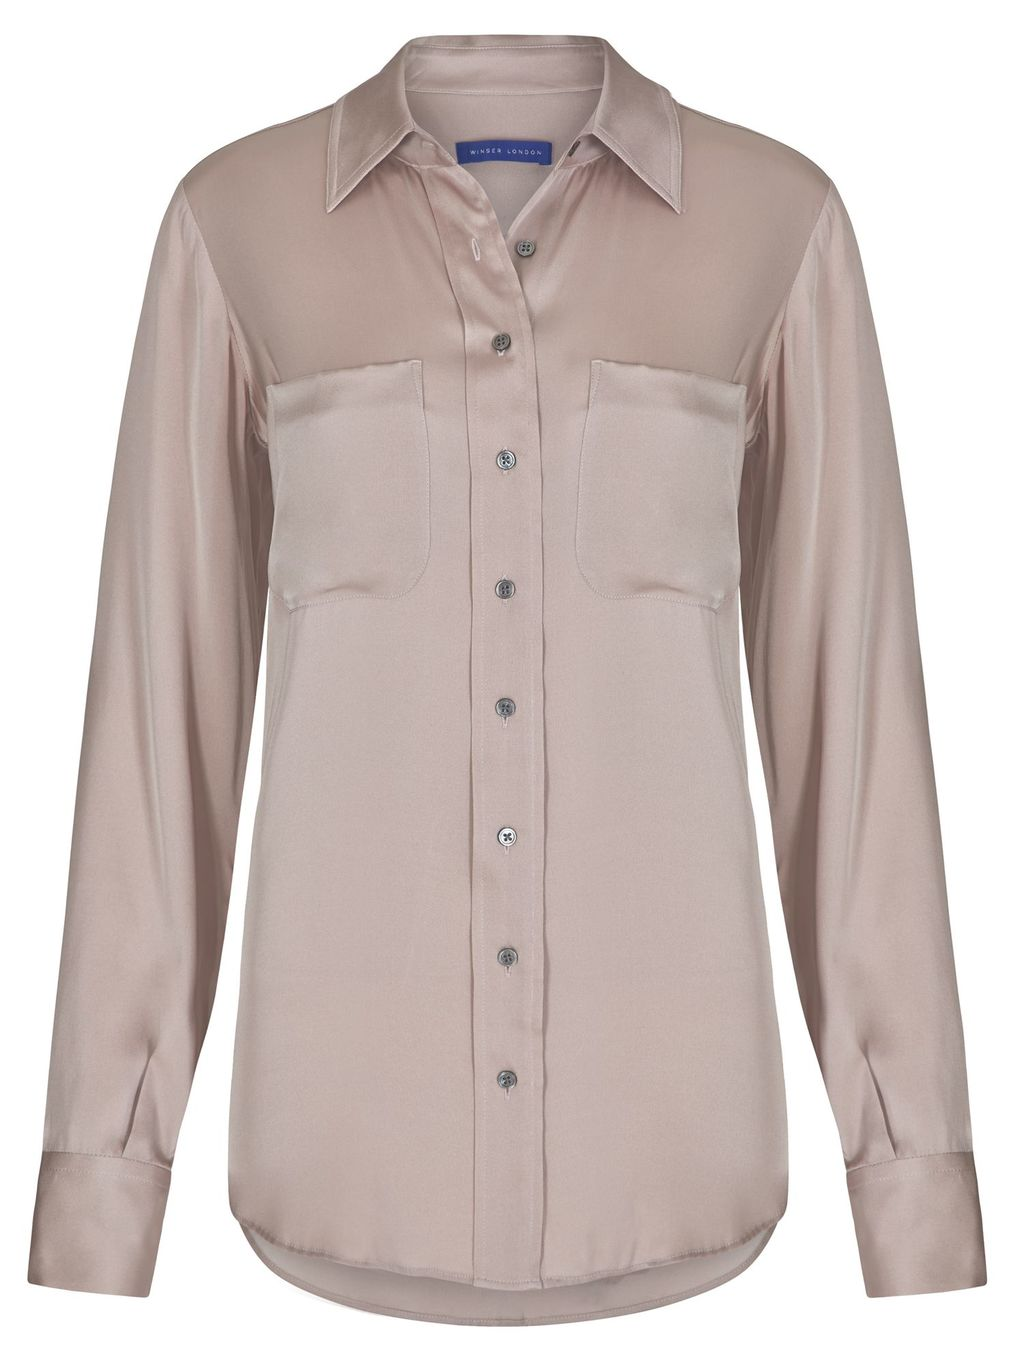 Silk Shirt, Beige - neckline: shirt collar/peter pan/zip with opening; pattern: plain; style: shirt; bust detail: subtle bust detail; predominant colour: taupe; occasions: casual, creative work; length: standard; fibres: silk - 100%; fit: straight cut; sleeve length: long sleeve; sleeve style: standard; texture group: silky - light; pattern type: fabric; season: s/s 2016; wardrobe: basic